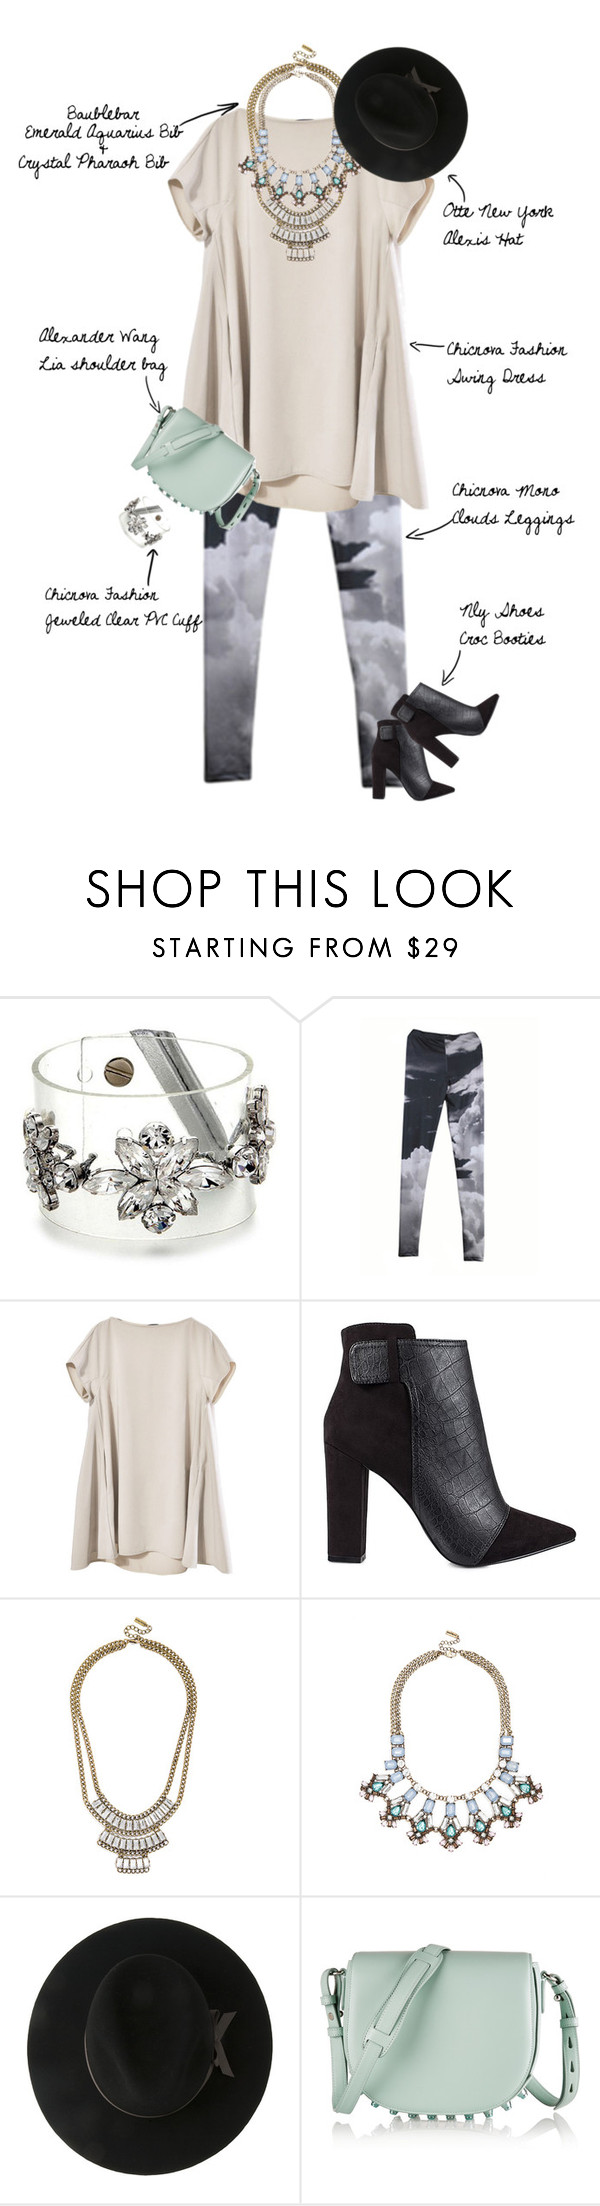 """""""Dust Clouds & Mists"""" by fashionscribbles ❤ liked on Polyvore featuring Nly Shoes, OTTE, Alexander Wang and vintage"""